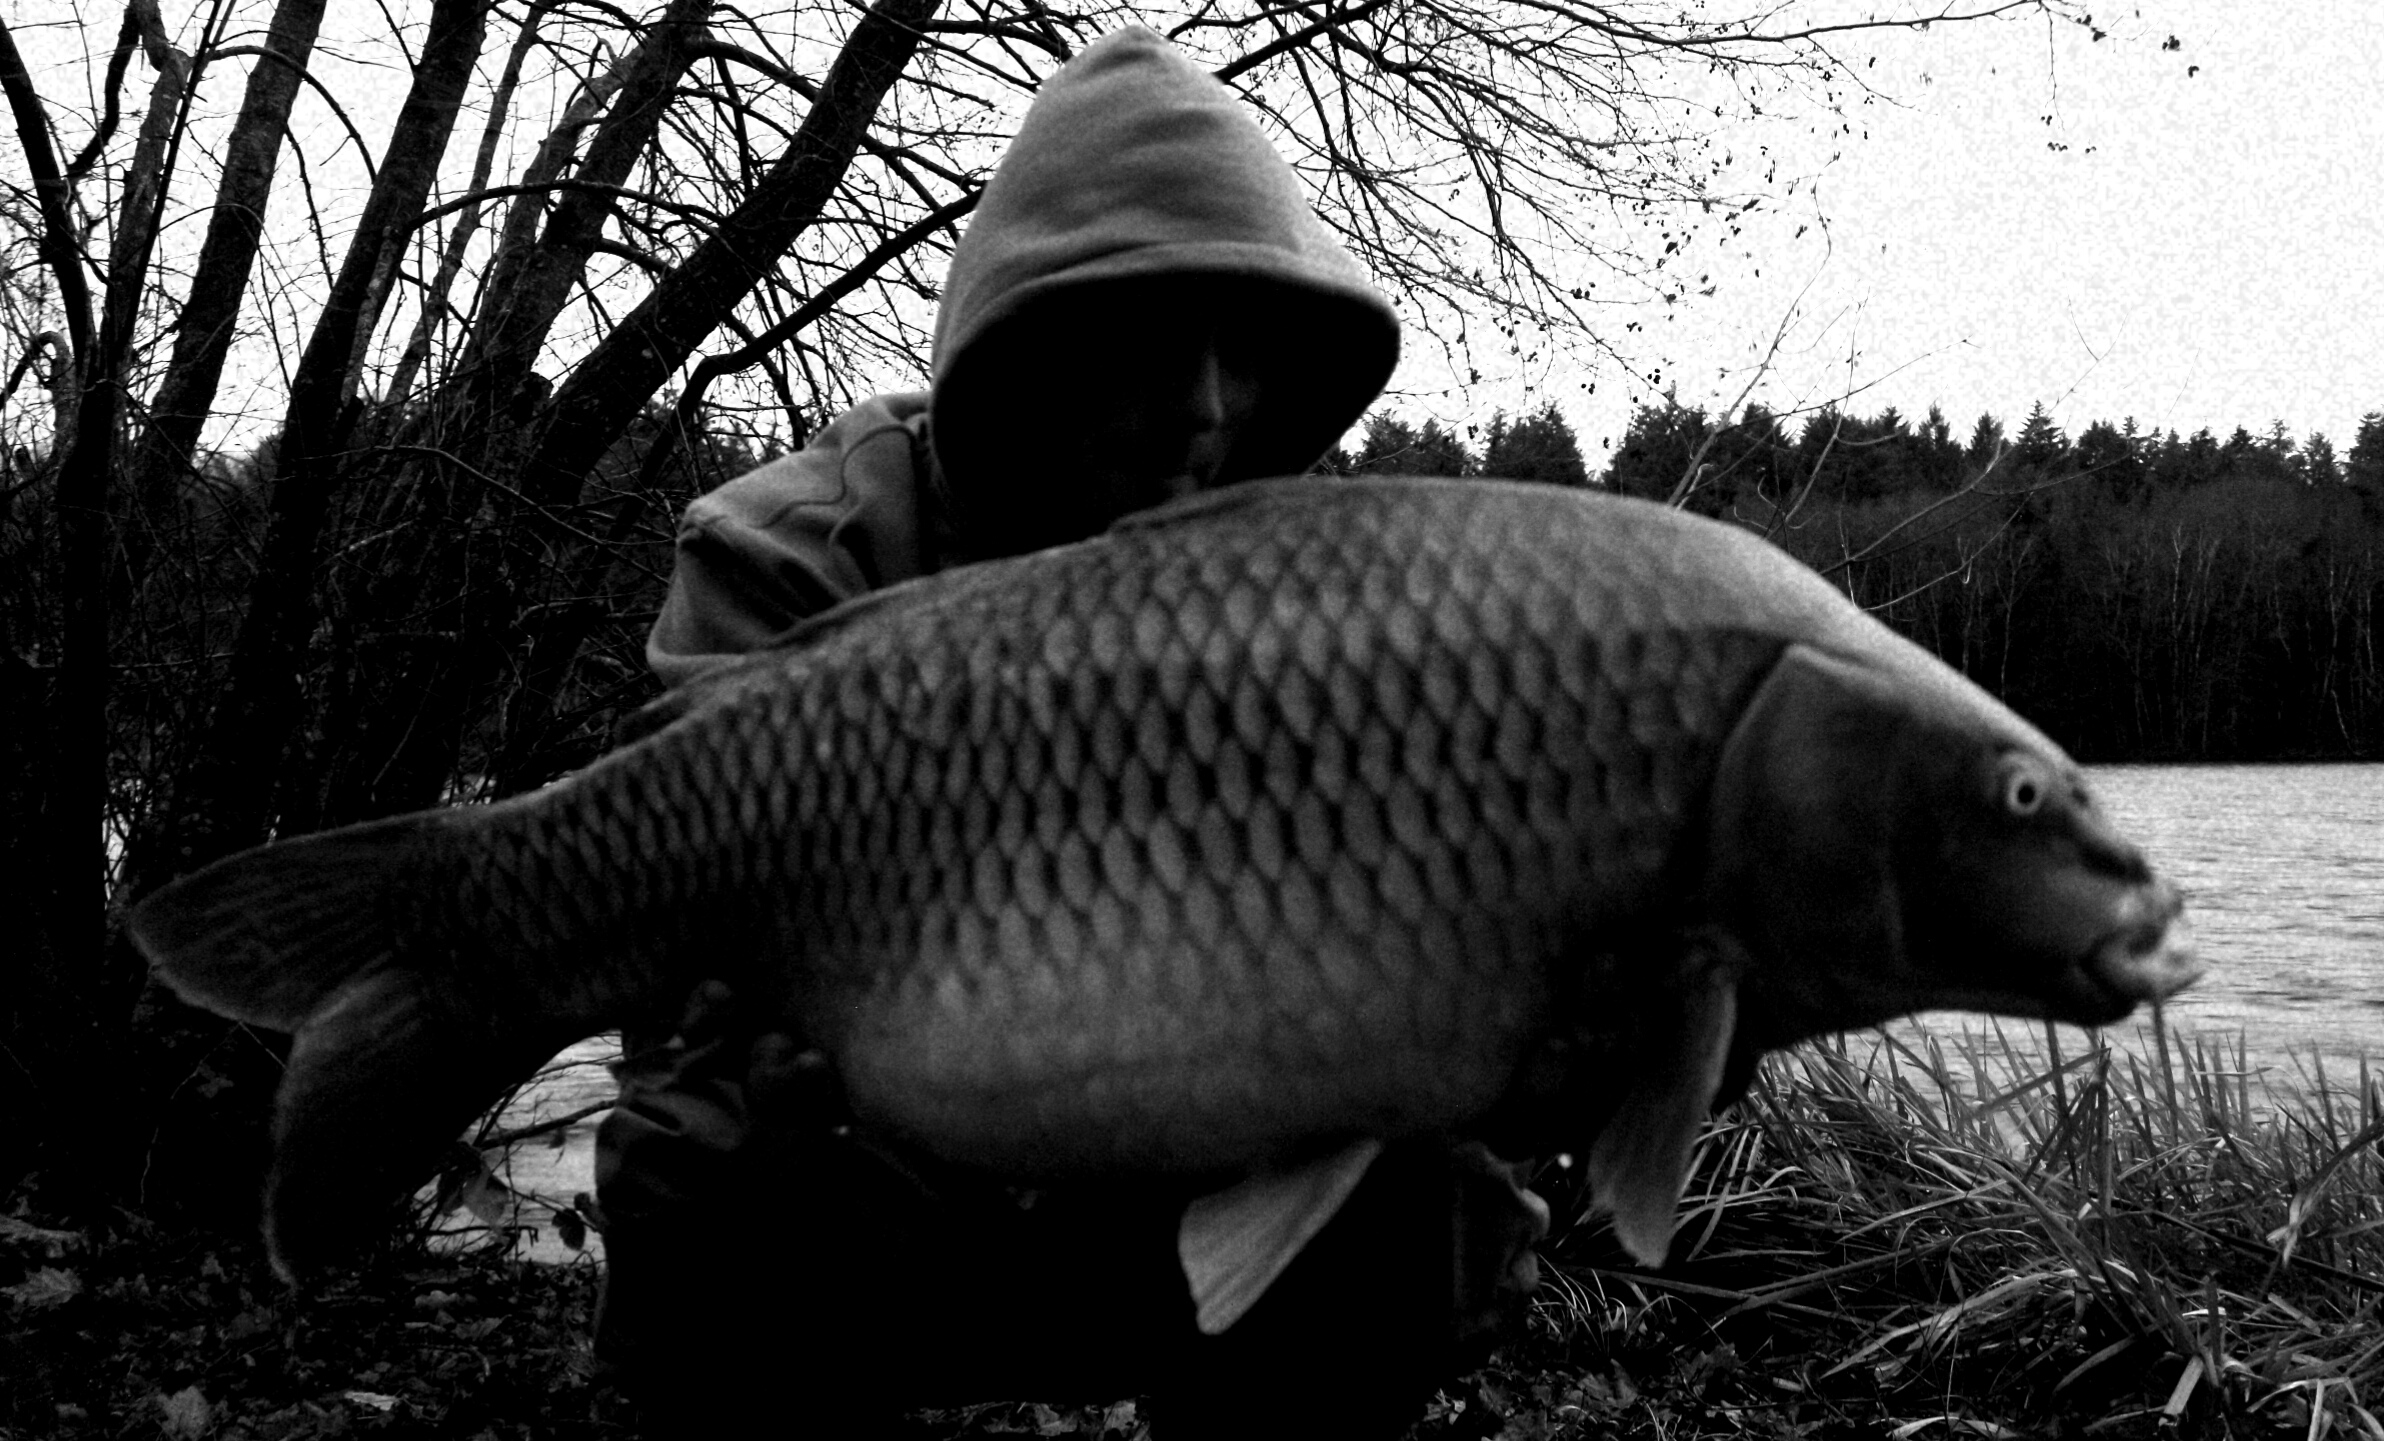 http://starbaits.com/fichiers/images/team/gallery/NICARD_Stephane/nicard_041_2019.jpg